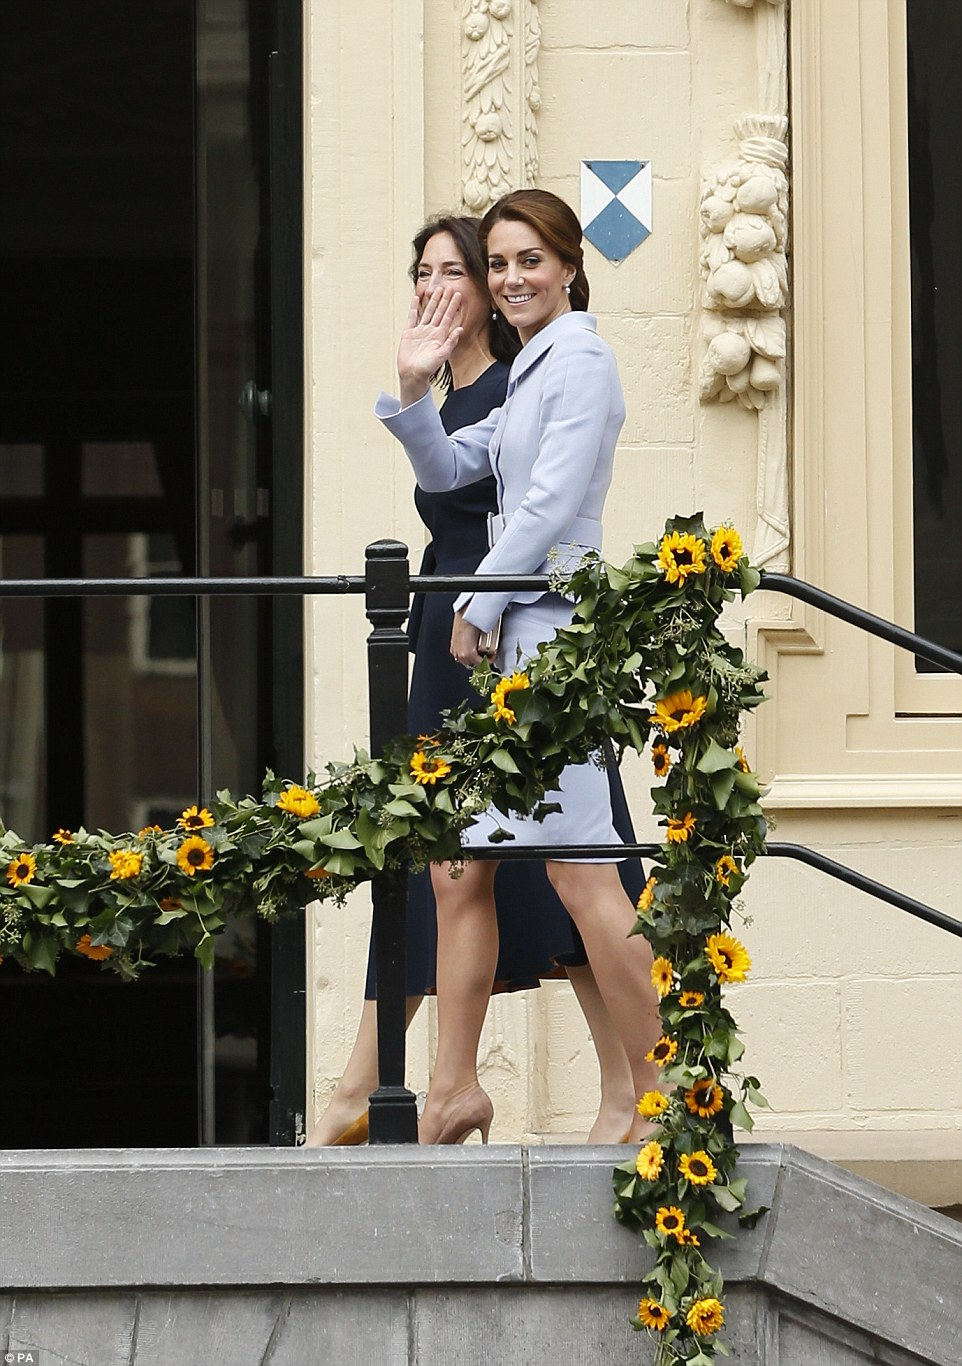 Kate waves to the crowd as she arrives at the Mauritshuis gallery in The Hague to visit an exhibition of 22 picture by Dutch artists loaned to the art gallery from the Royal Collection